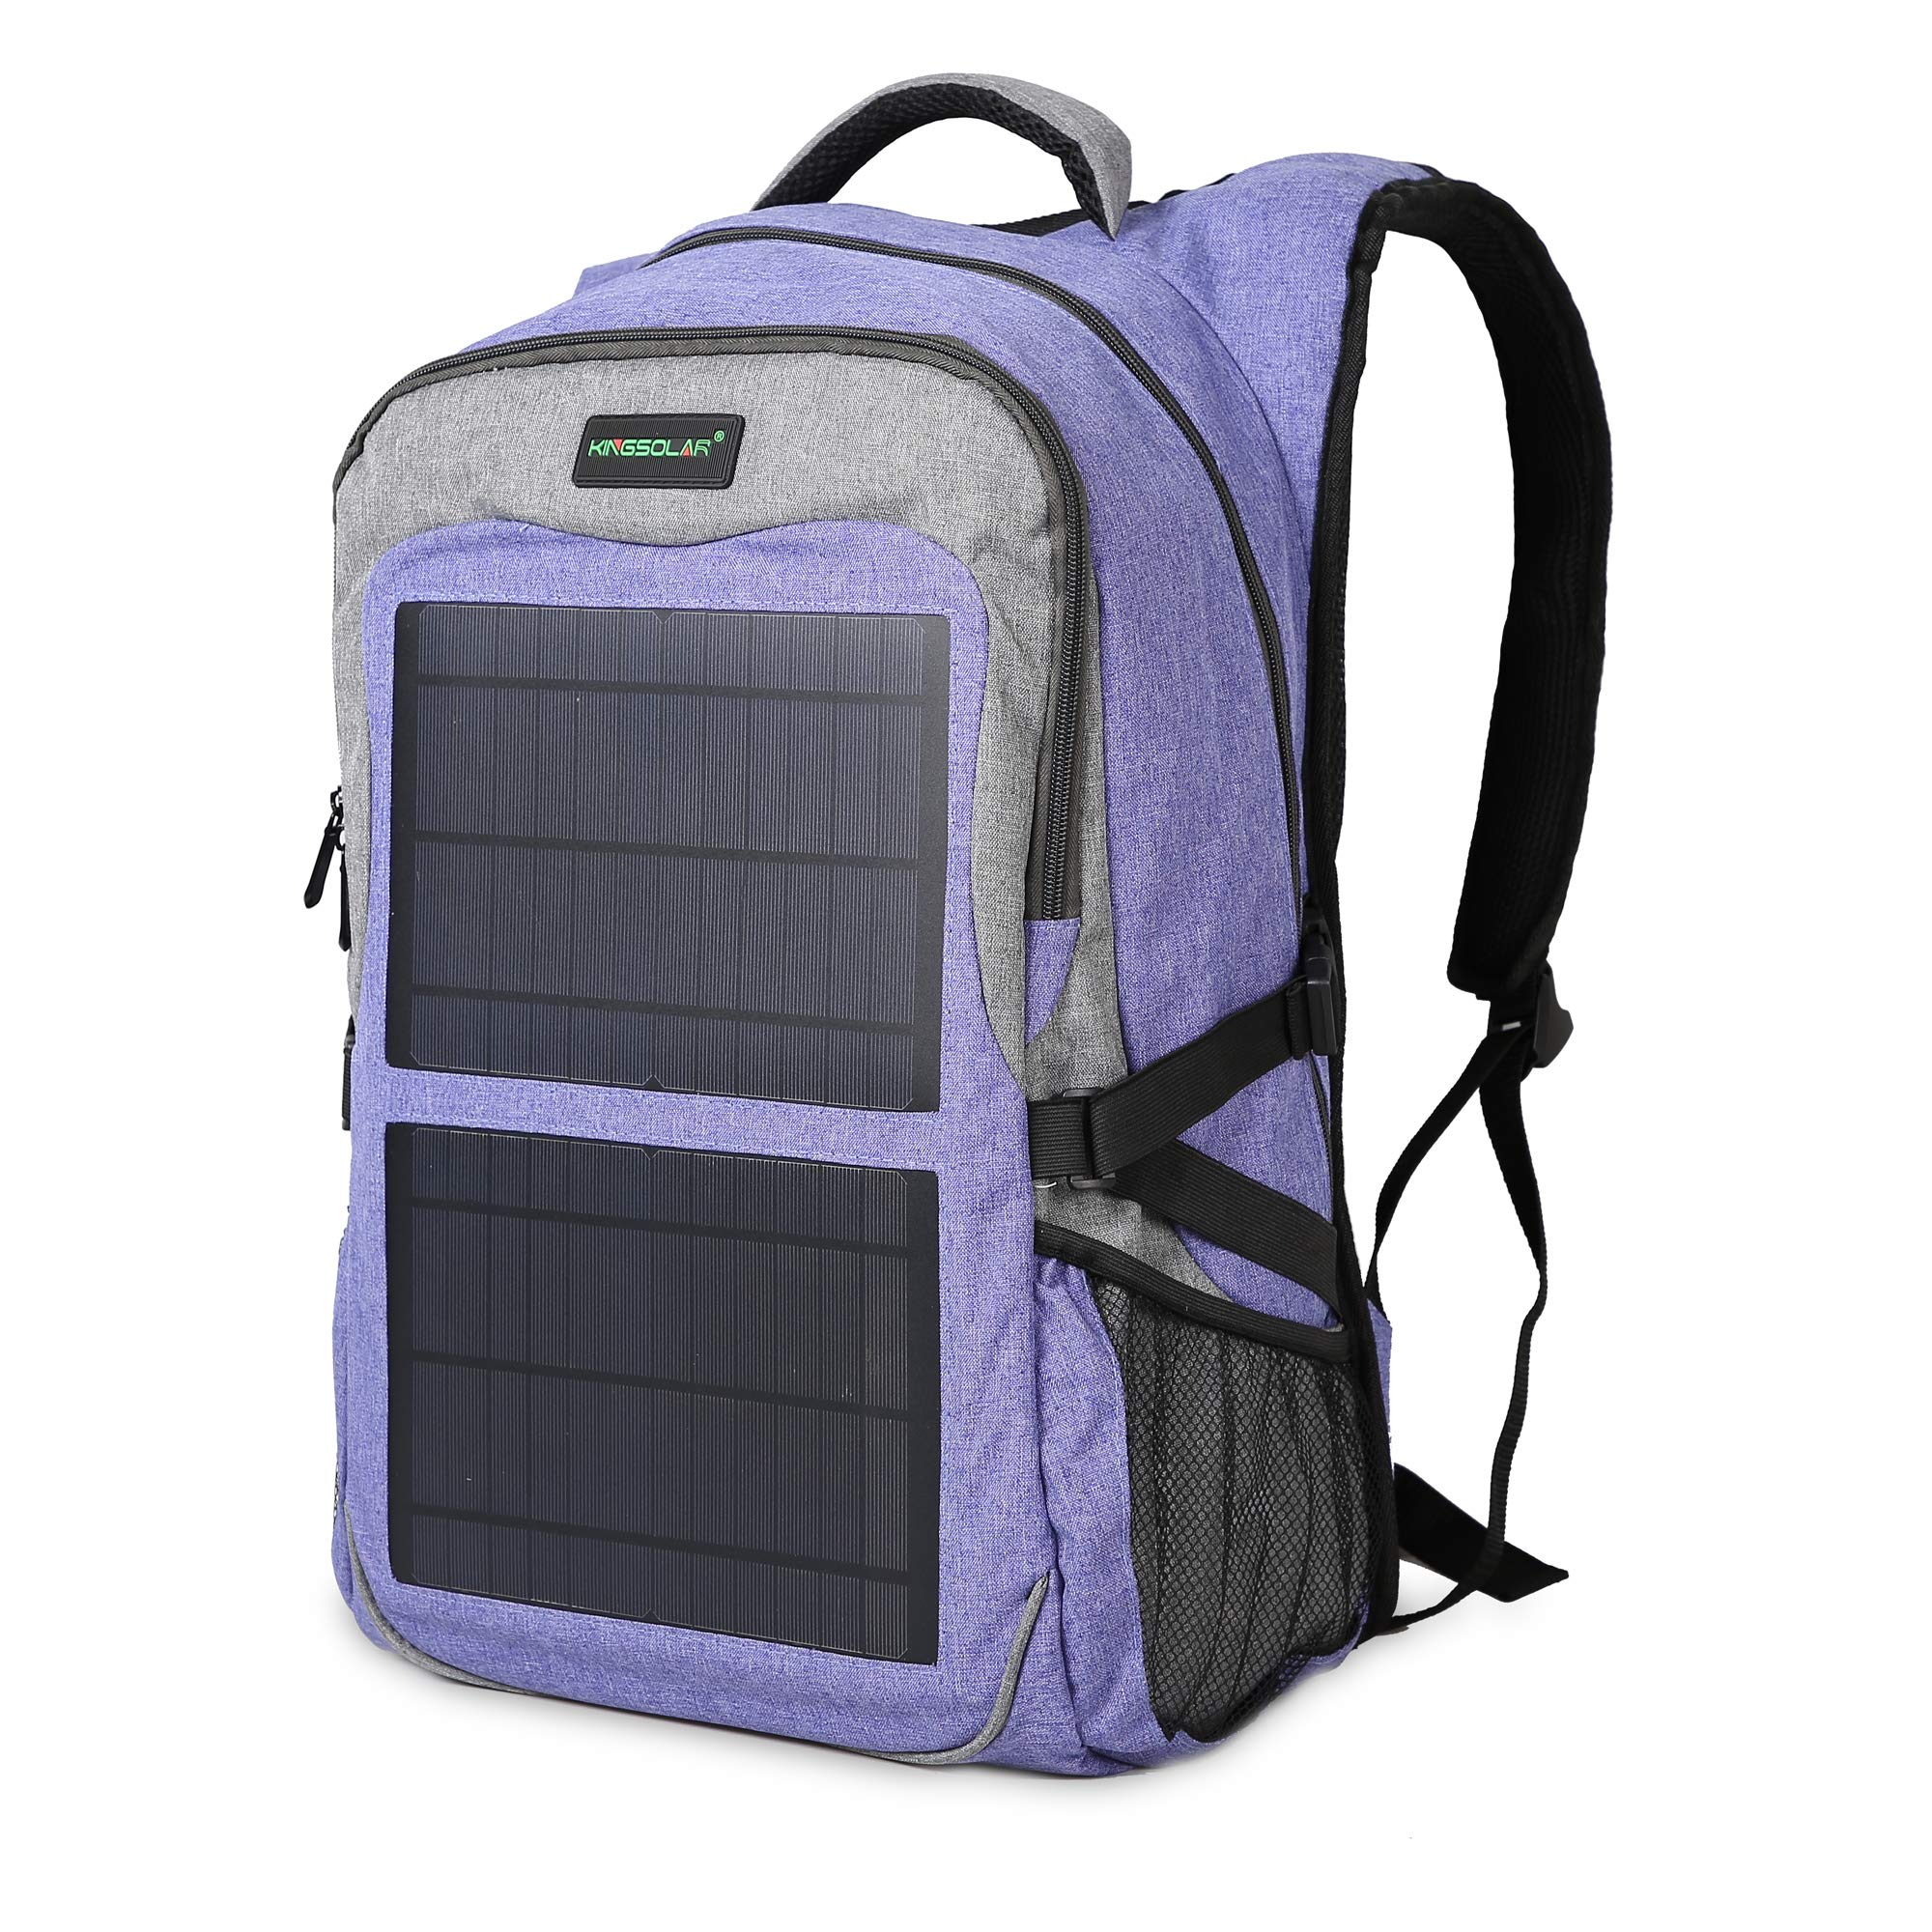 Kingsolar Multiple Function Solar Backpack with 12W Solar Panel Charger Two USB Ports for Laptop Electronic Devices